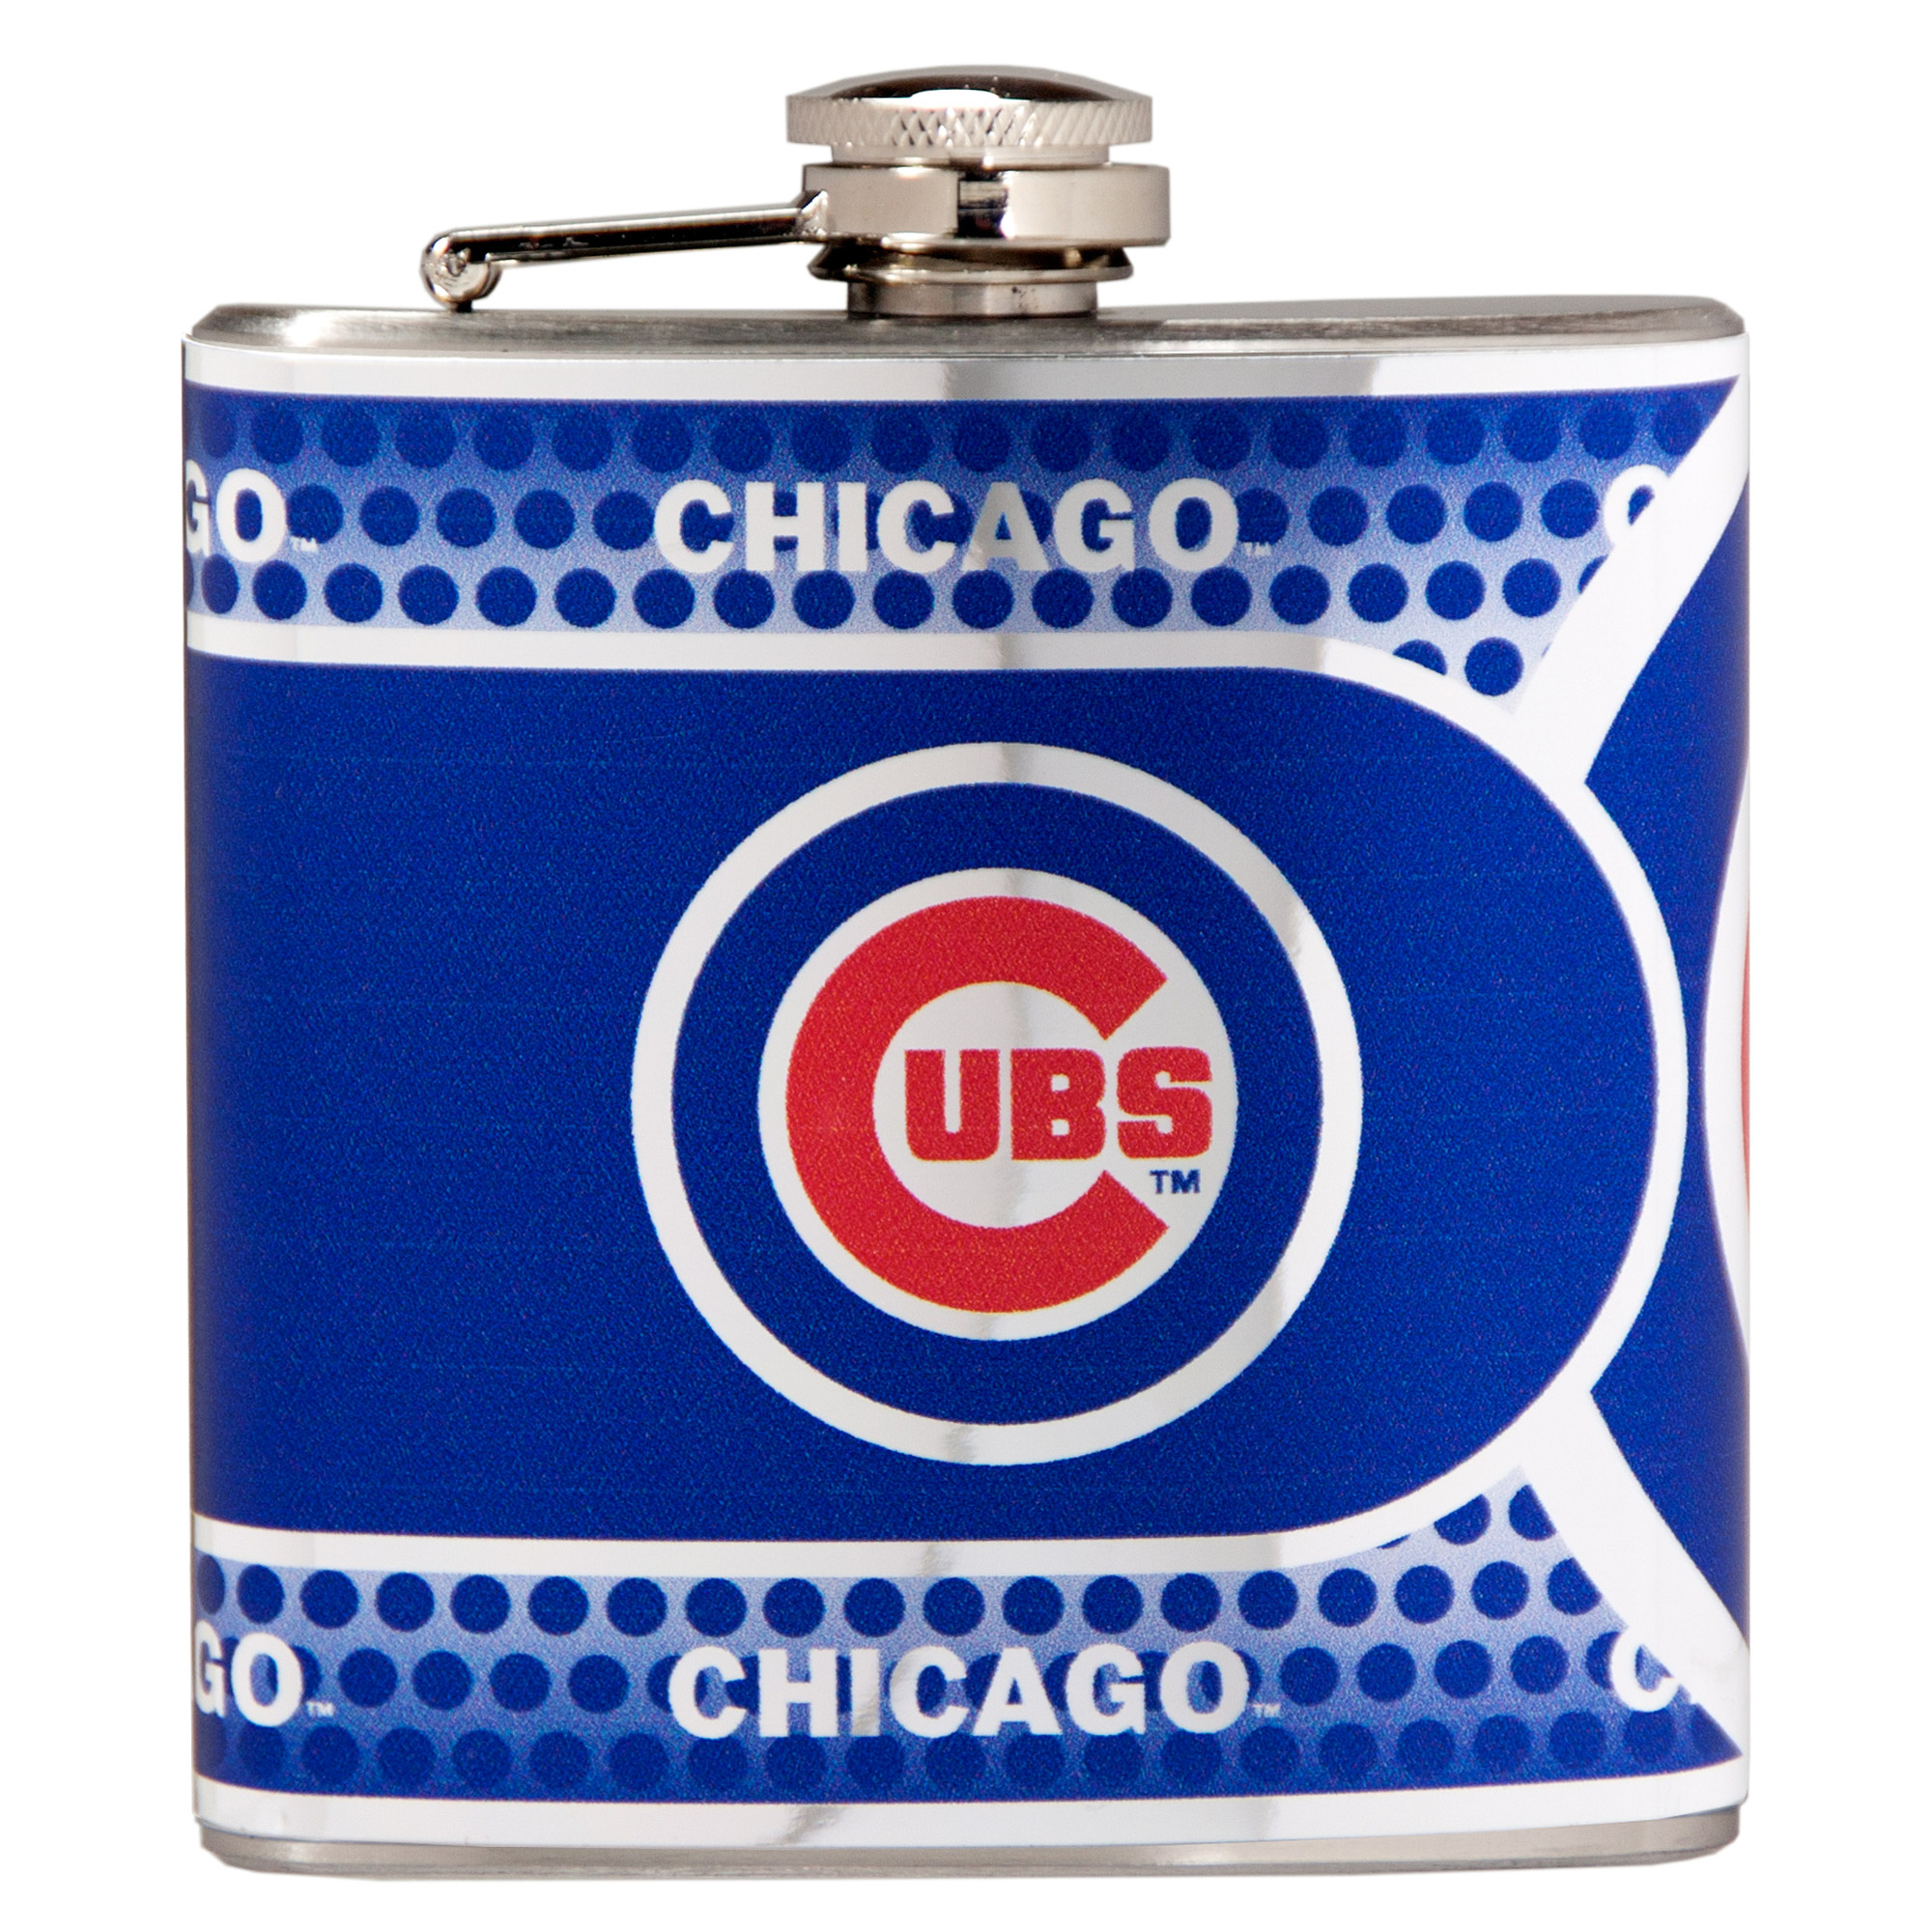 Chicago Cubs 6oz. Stainless Steel Hip Flask - Silver - No Size